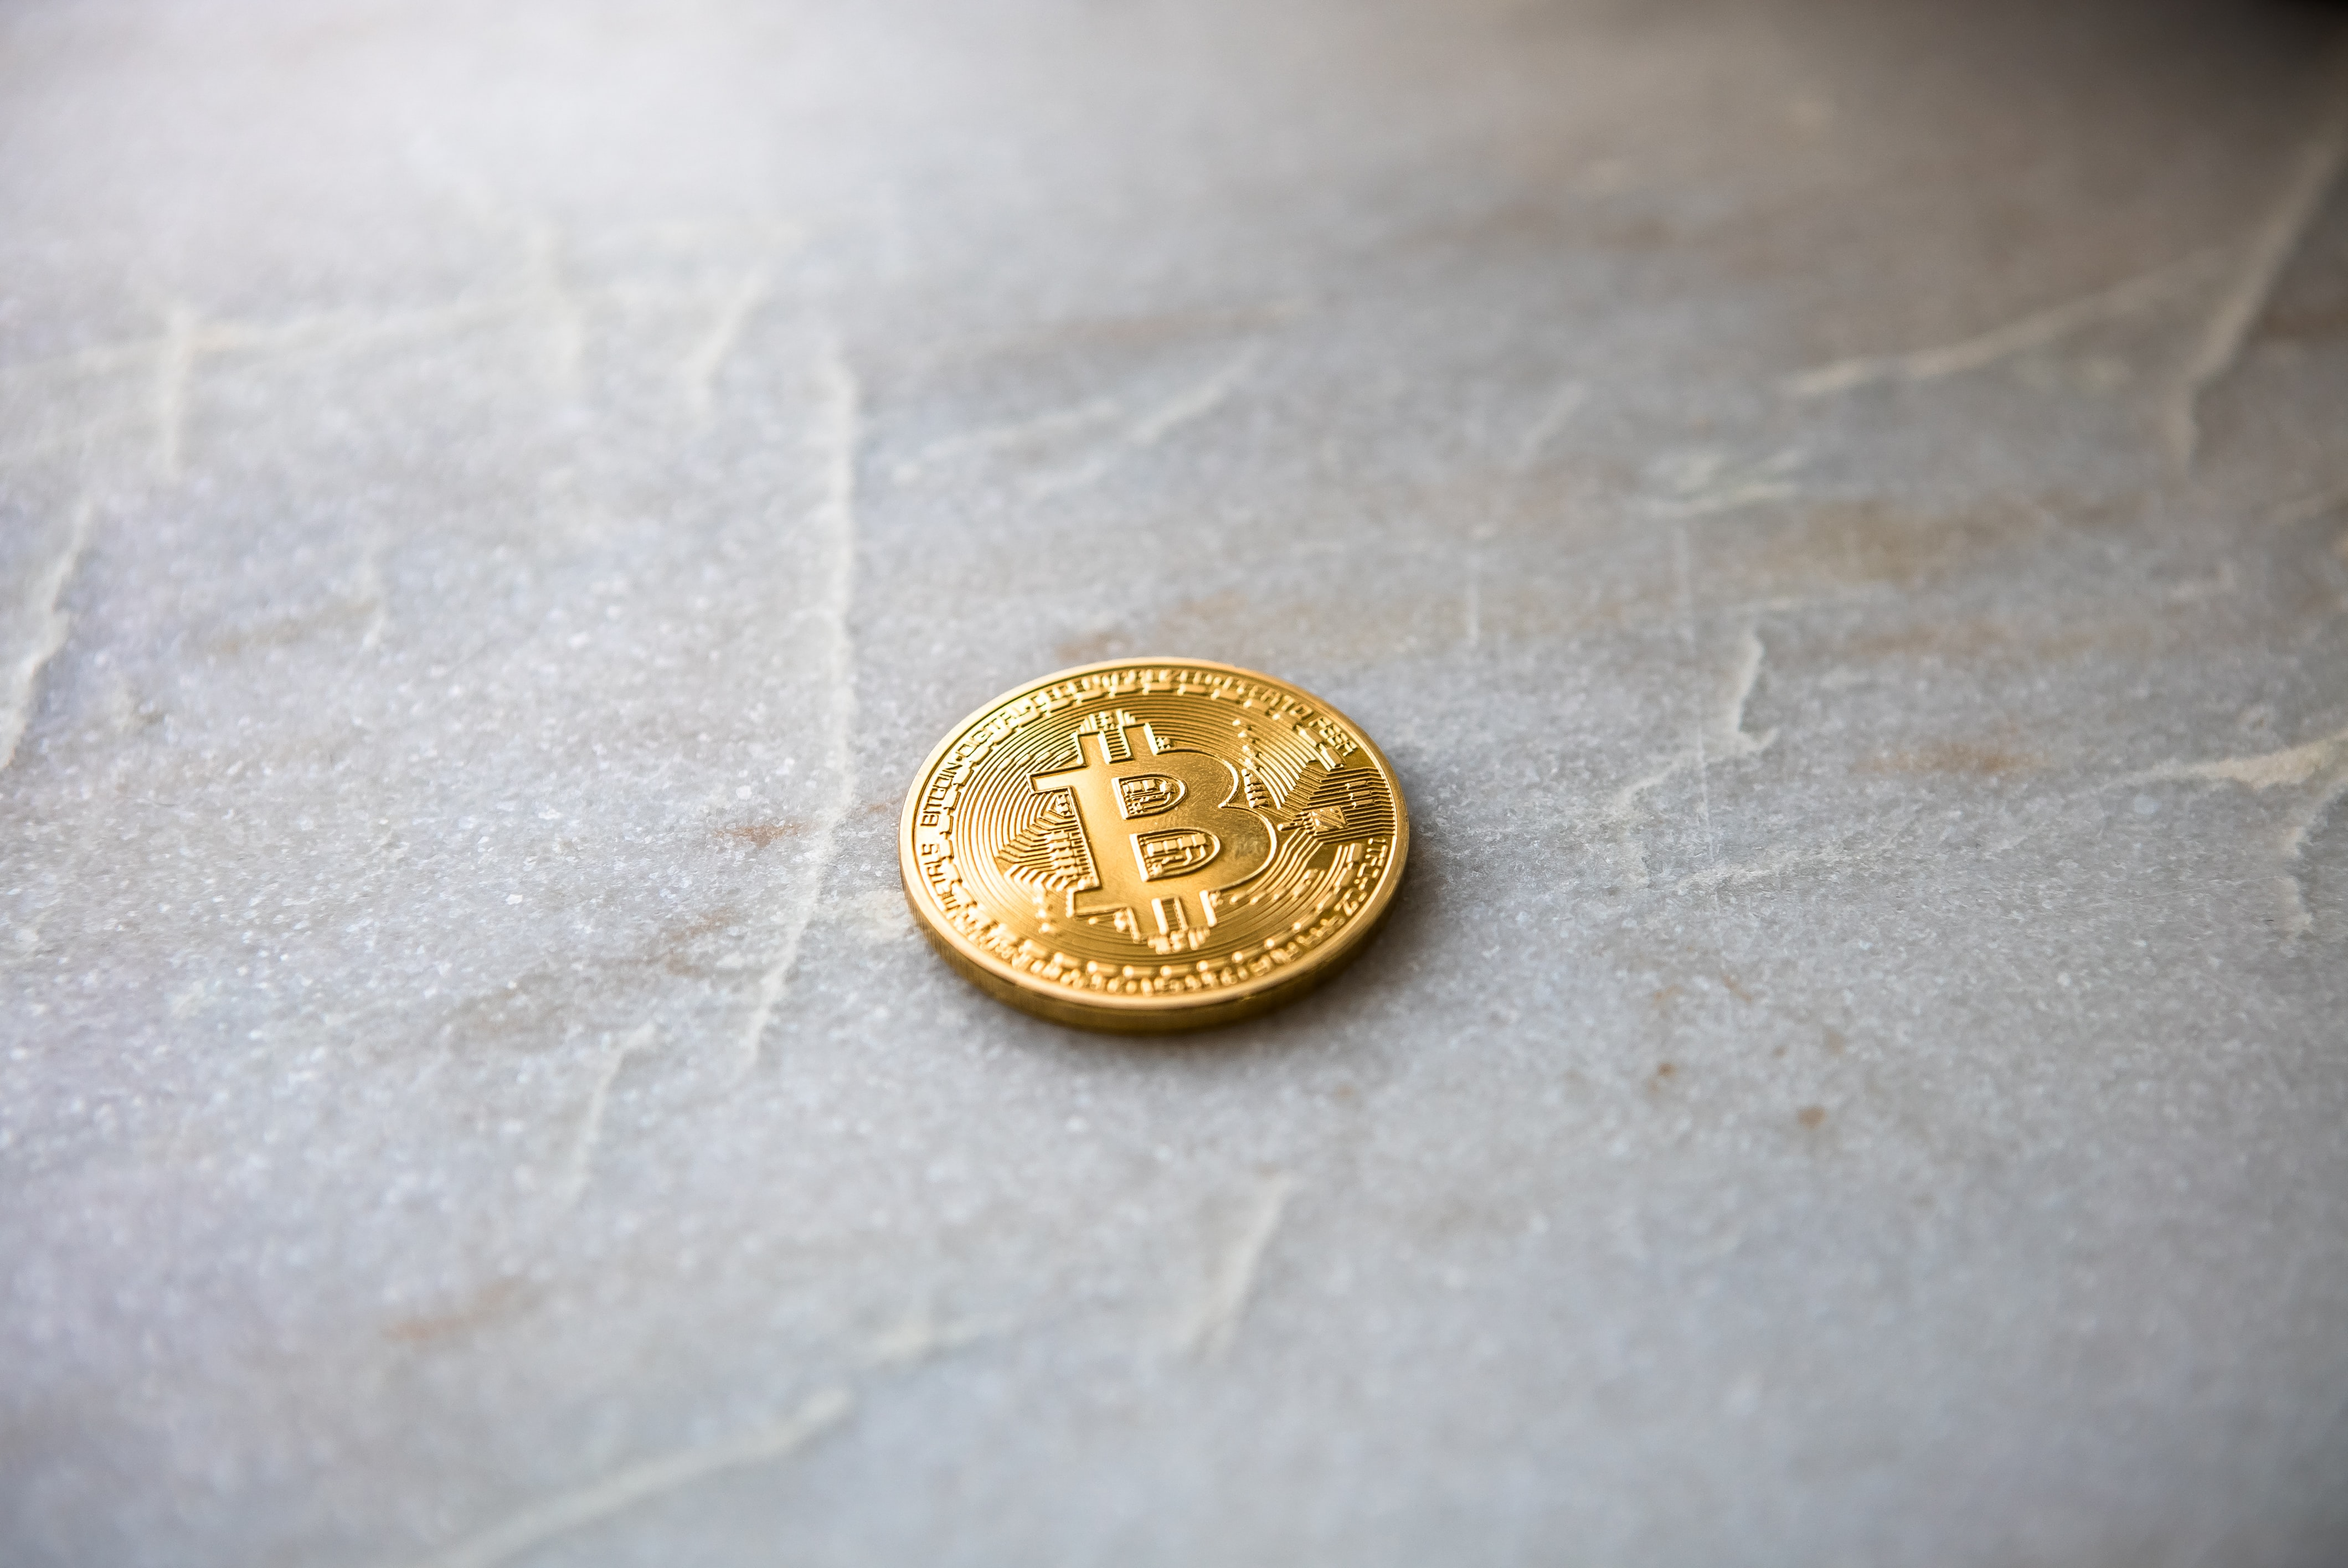 This particular event might help Bitcoin cross $40,000